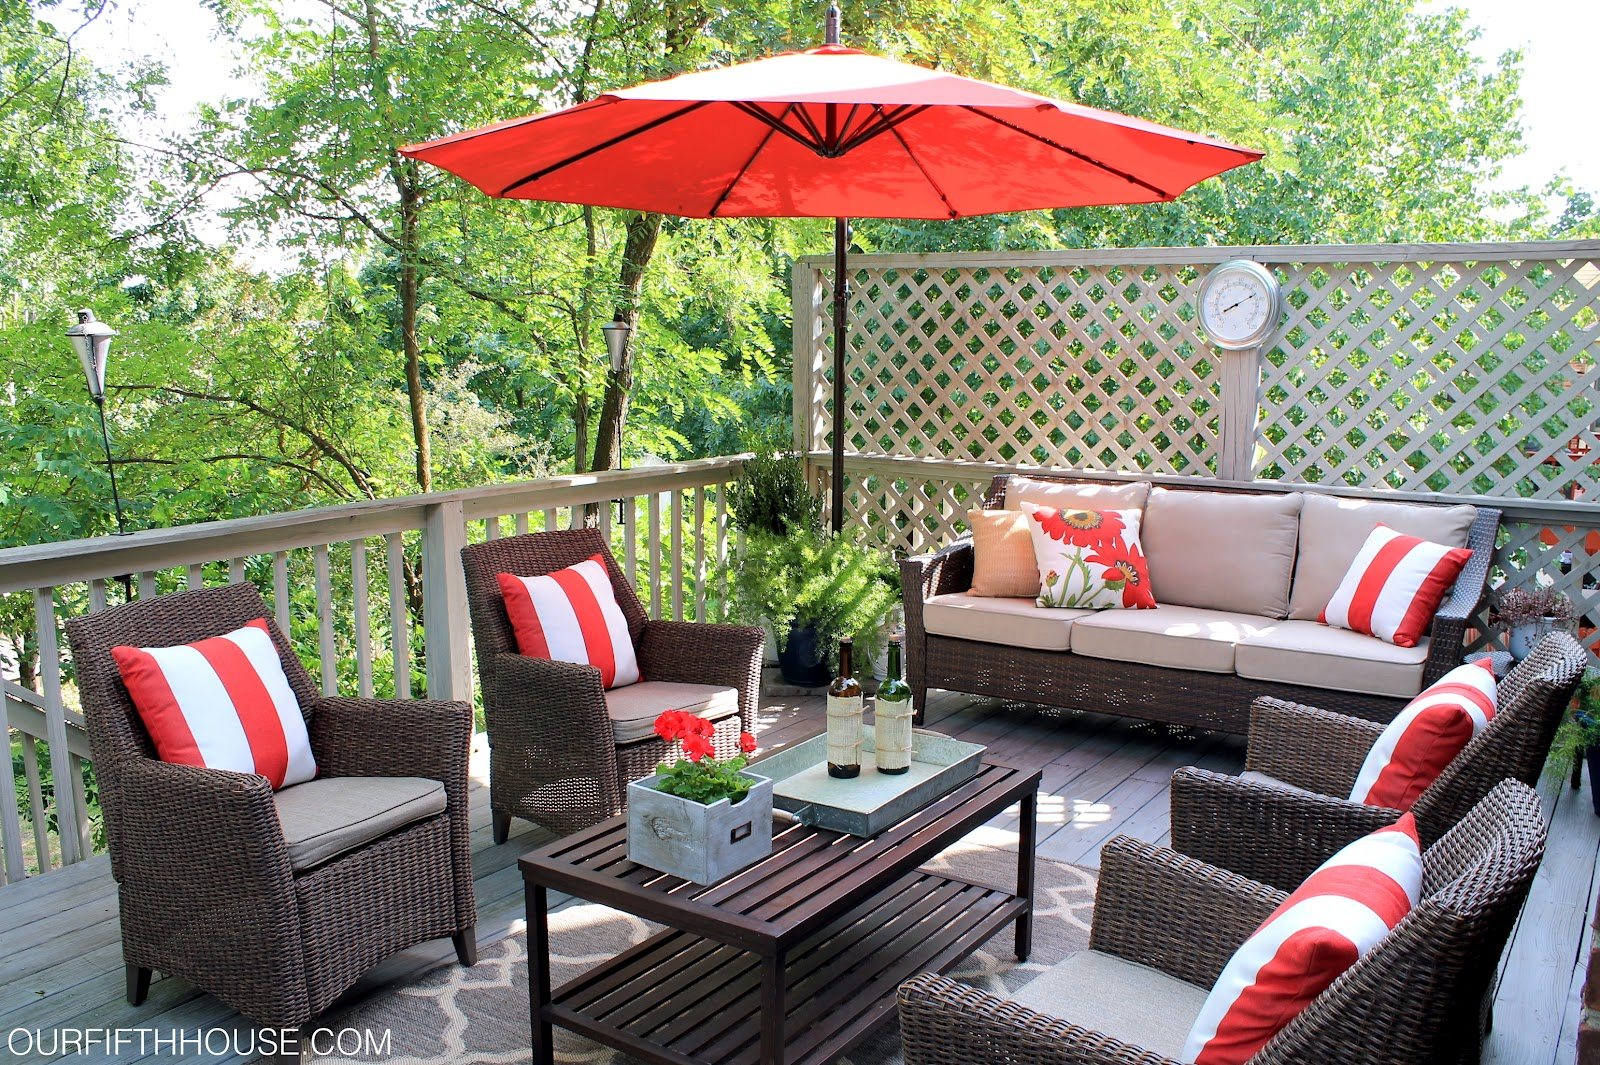 Outdoor living deck updates our fifth house for House furniture pictures